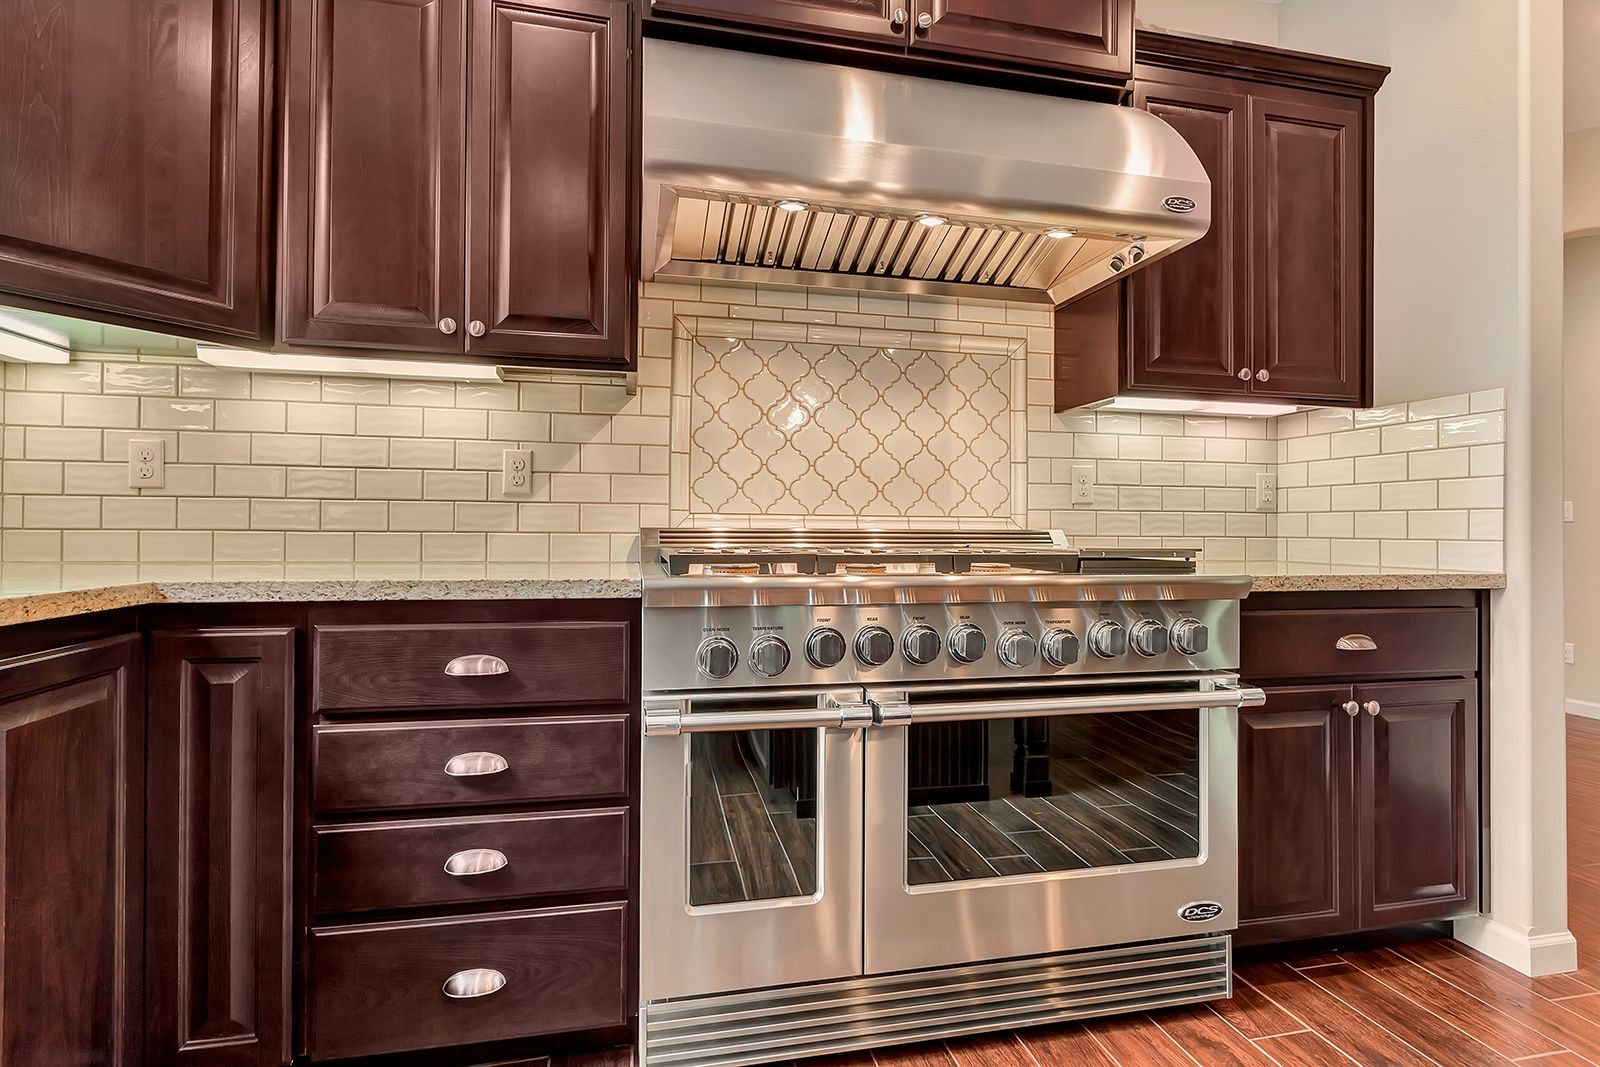 kitchen backsplash accent tile subway tile backsplash with a matching arabesque accent behind this 48 quot range arabesque tile 2161